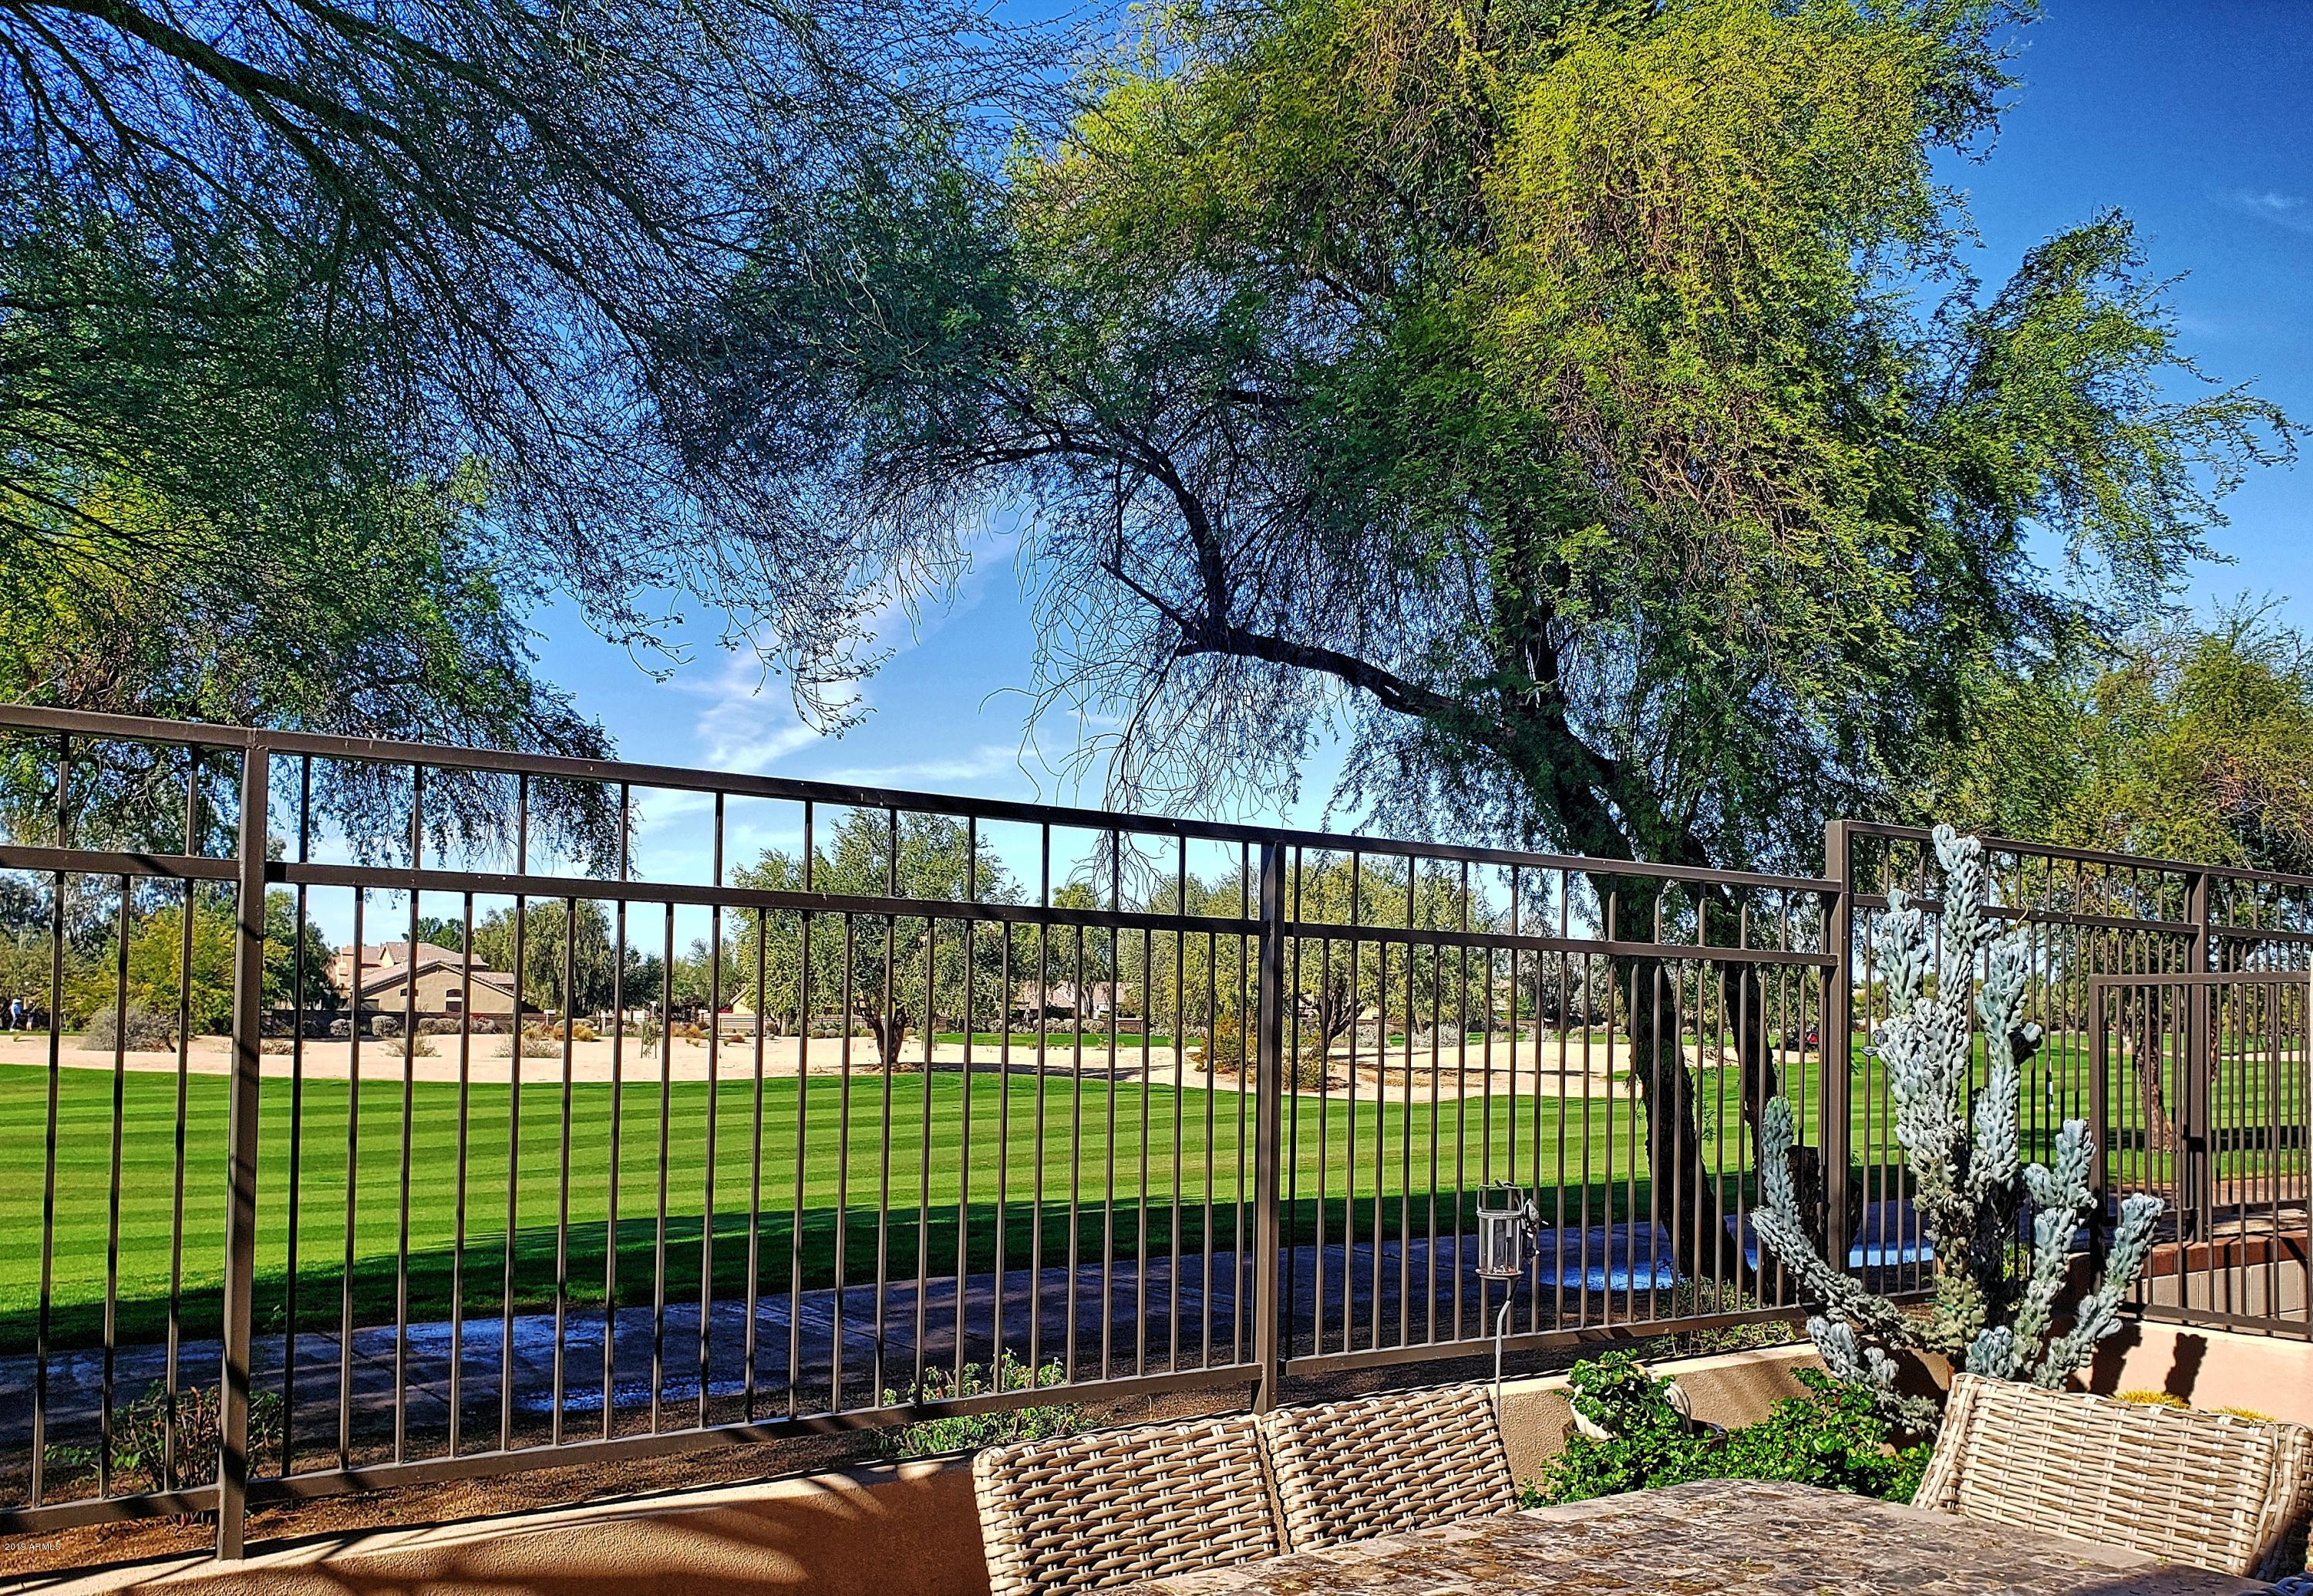 15240 N CLUBGATE Drive # 138, Scottsdale, AZ 85254, 3 Bedrooms Bedrooms, ,Residential Lease,For Rent,15240 N CLUBGATE Drive # 138,6006797